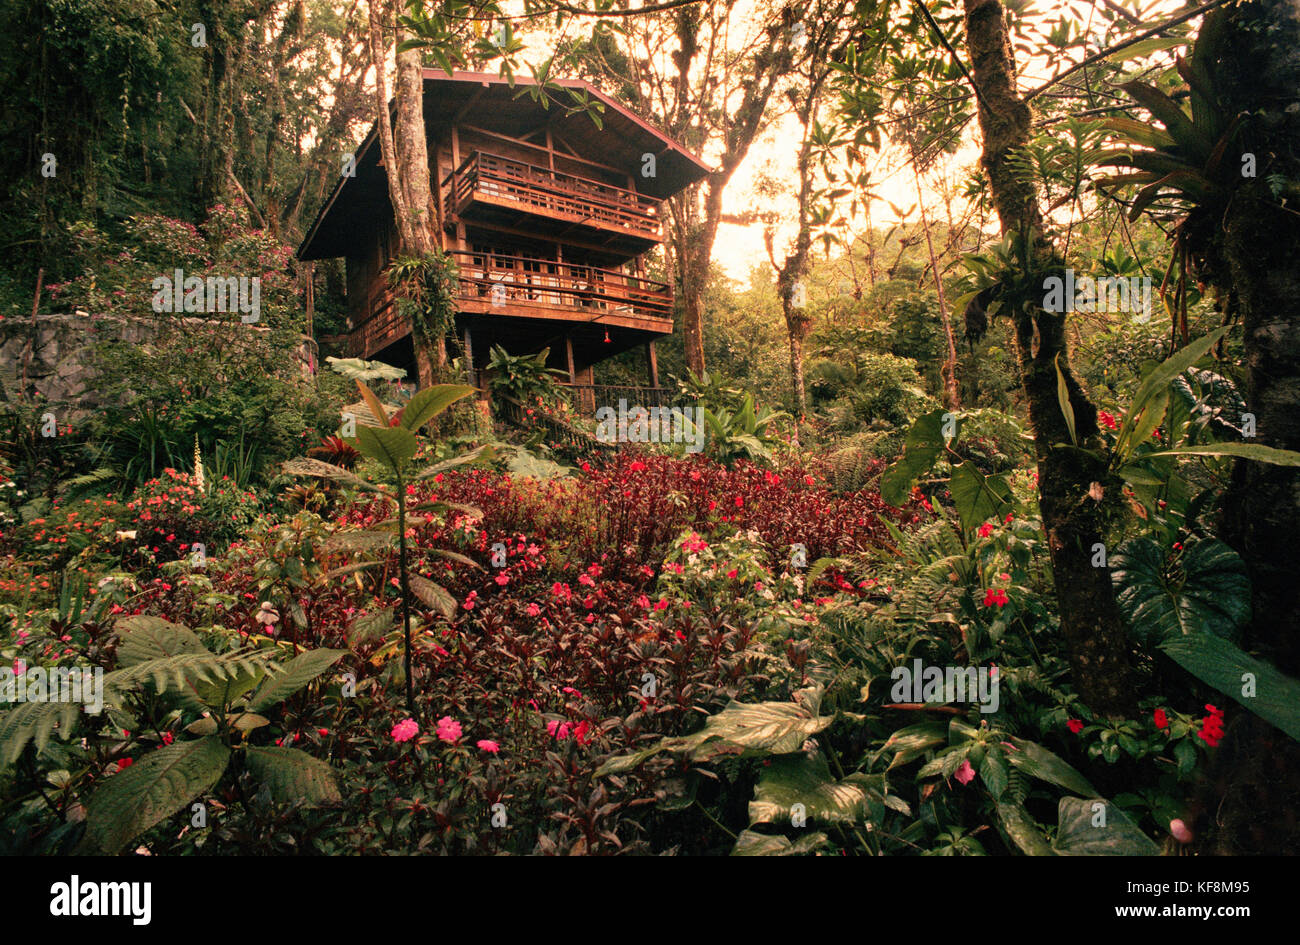 PANAMA, David, Guadalupe, Los Quetzales Lodge, Swiss style chalet in the cloud forest, Volcan Baru National Park - Stock Image